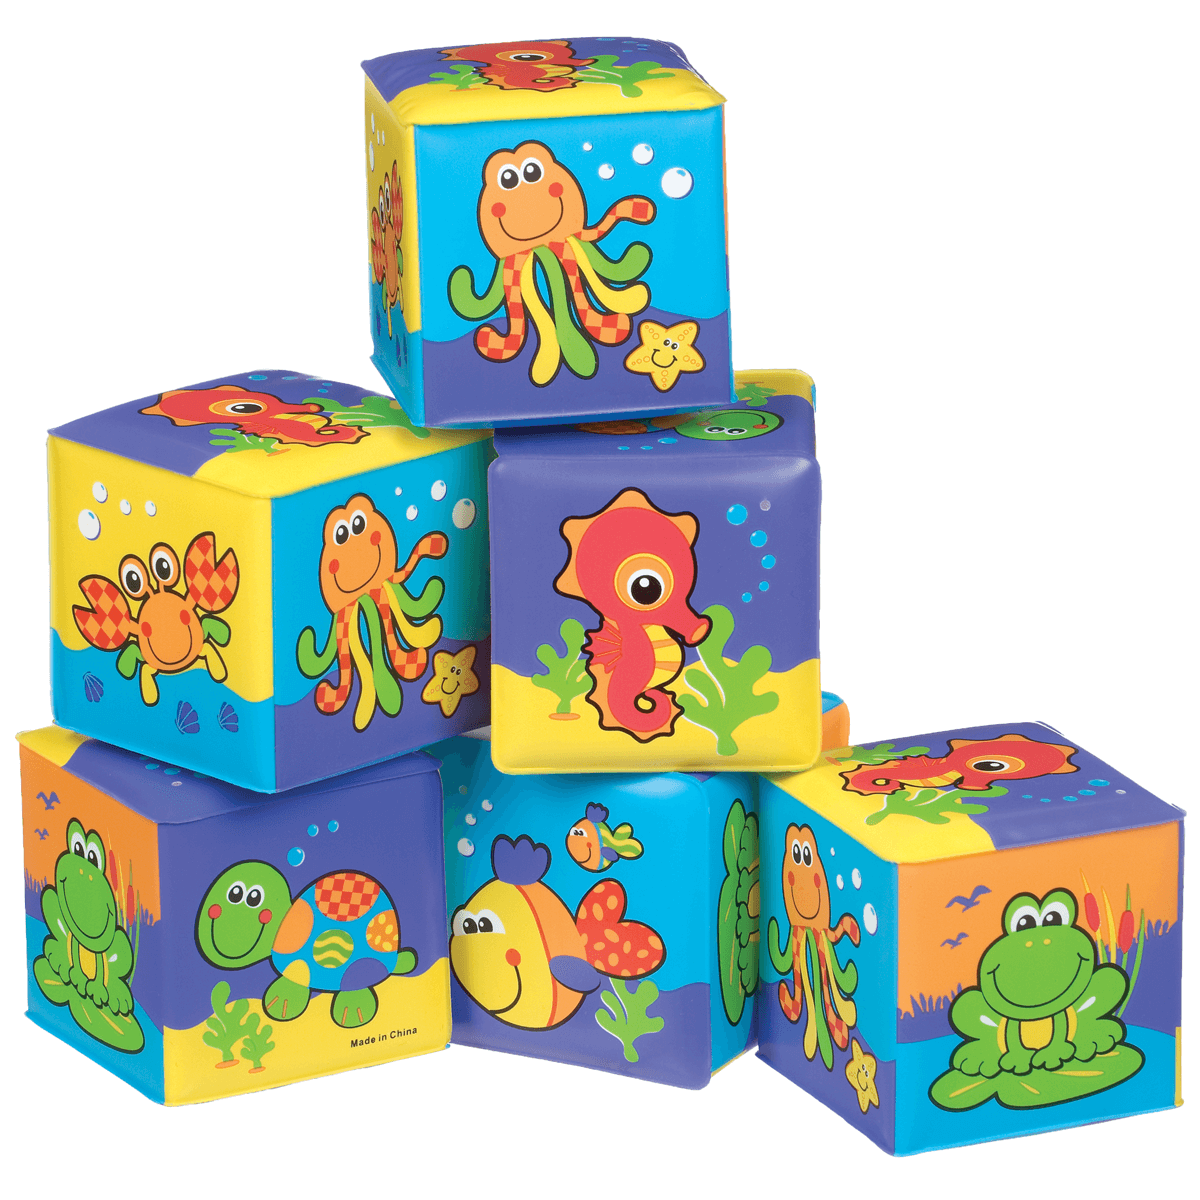 Playgro Soft Cubes from Early Learning Center